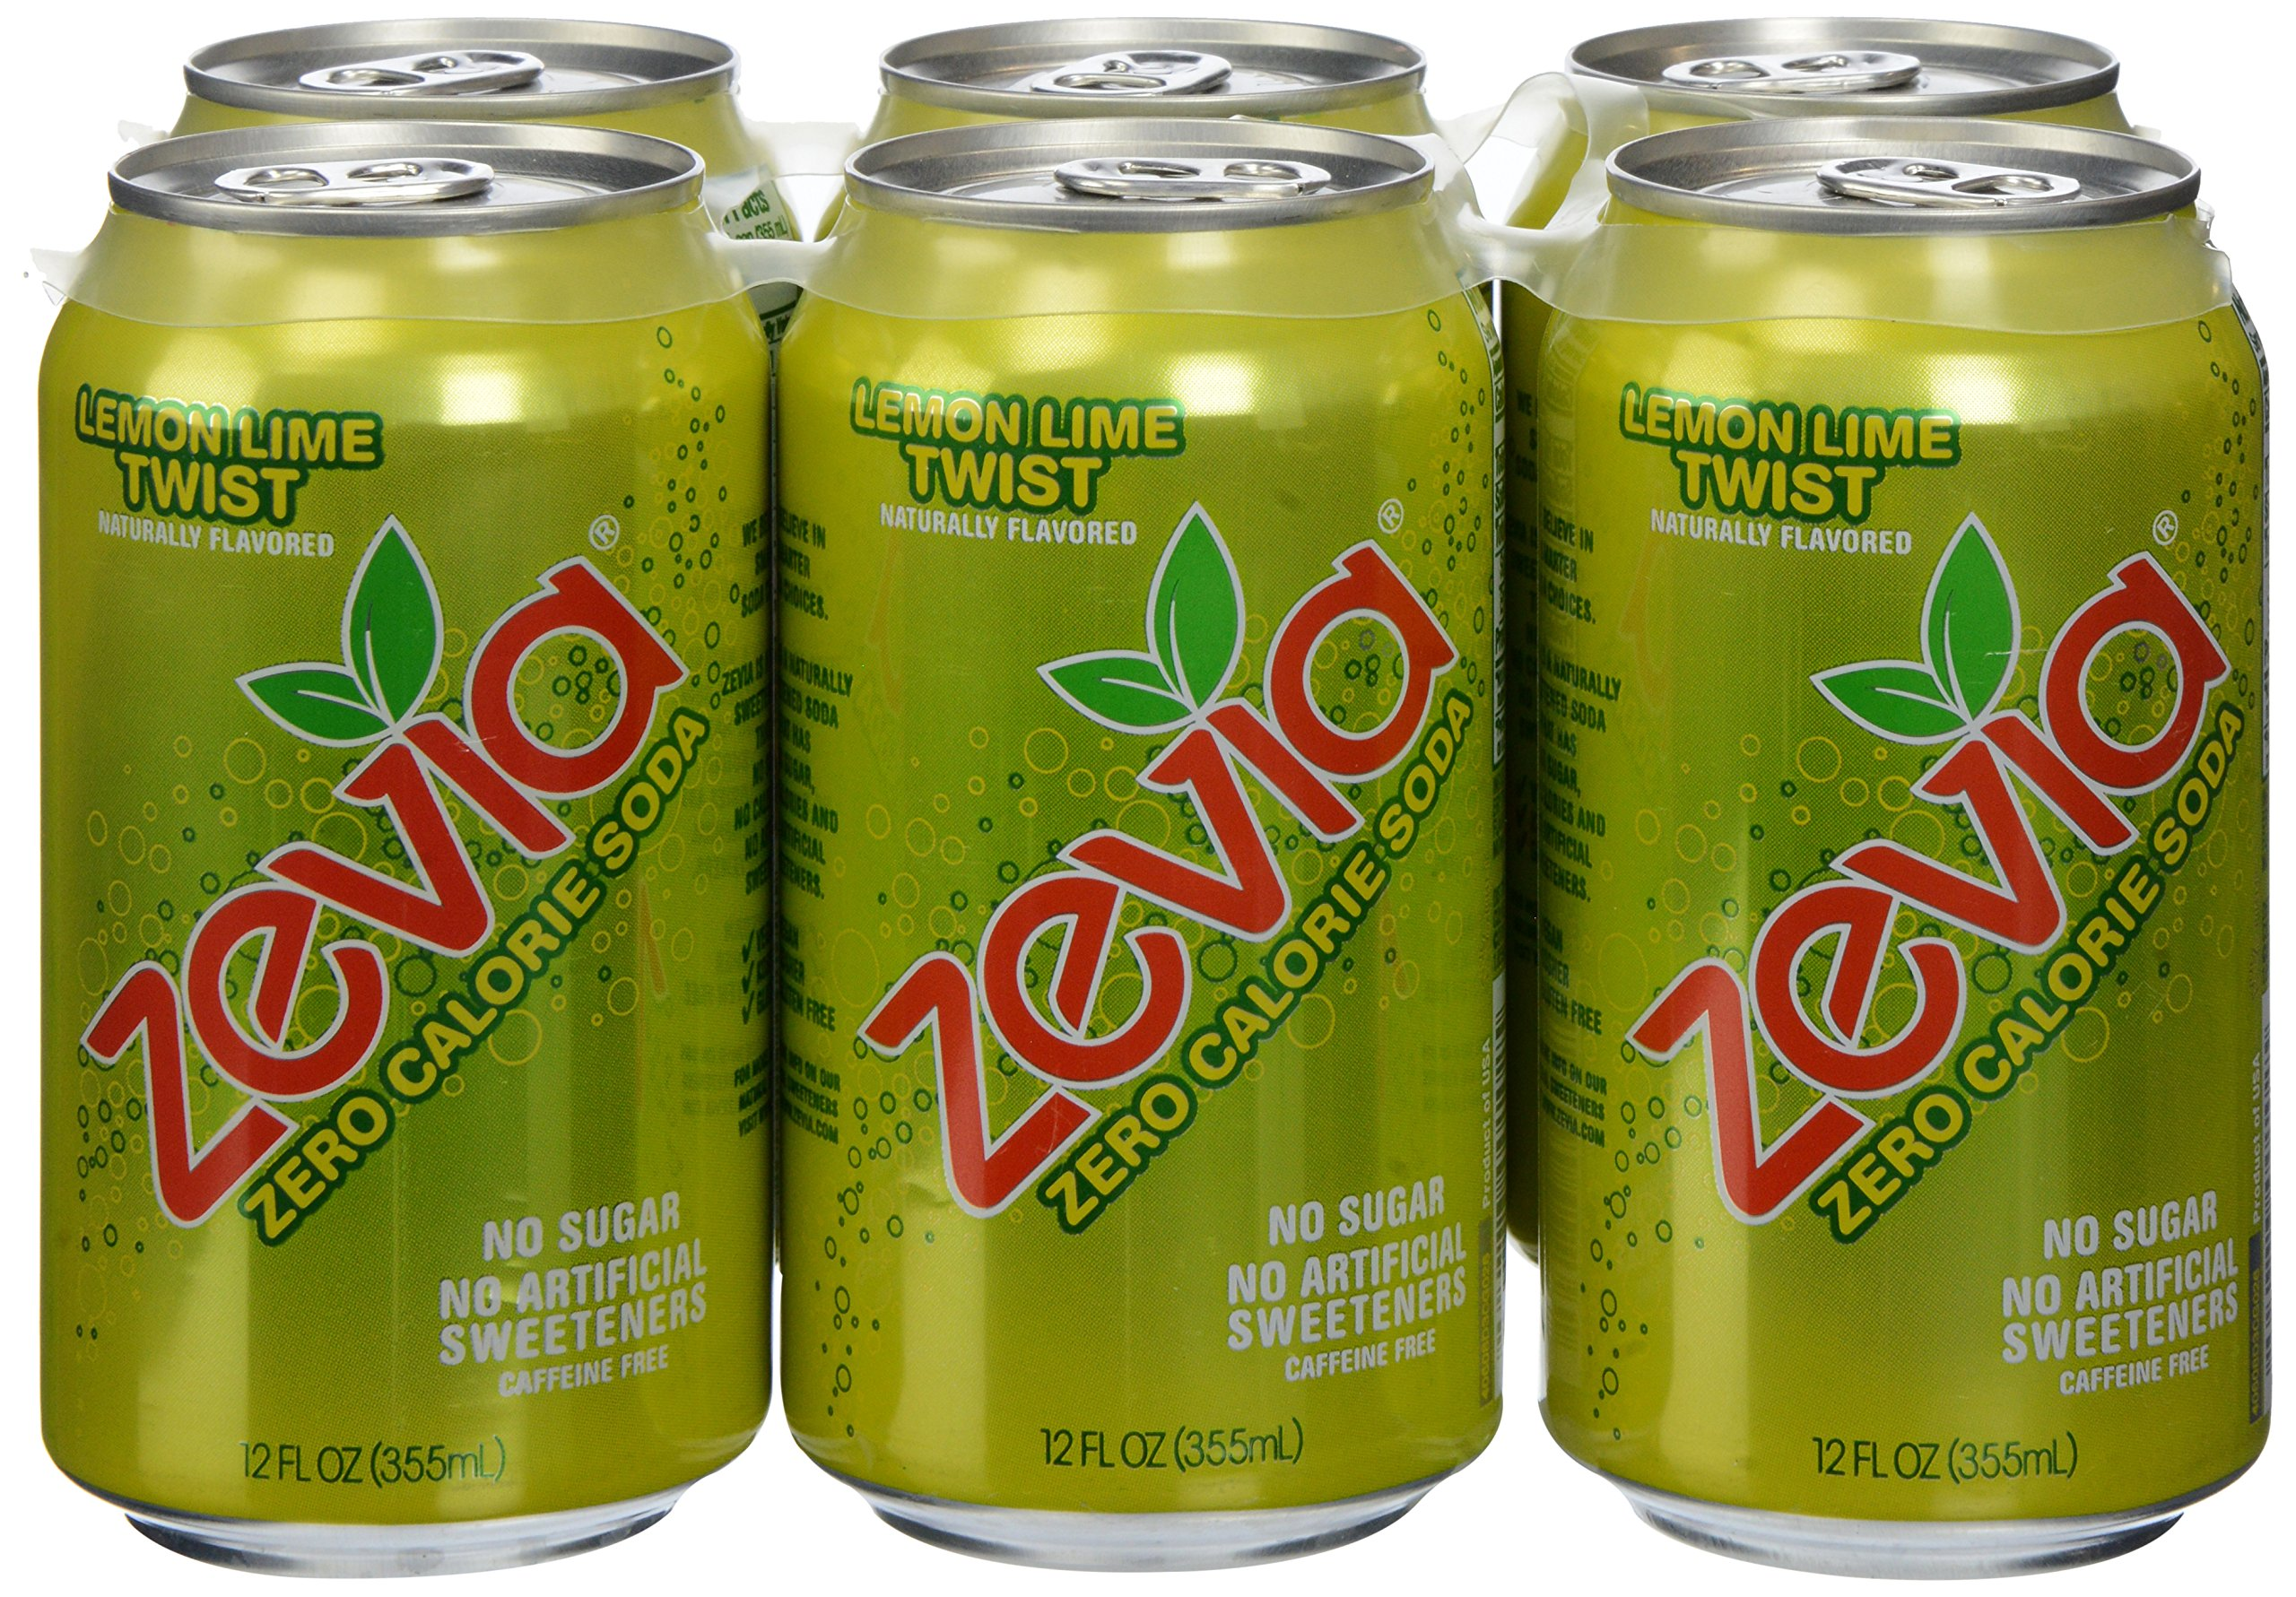 Zevia Natural Twist Soda, Sugar Free, 12 oz, 6 pack